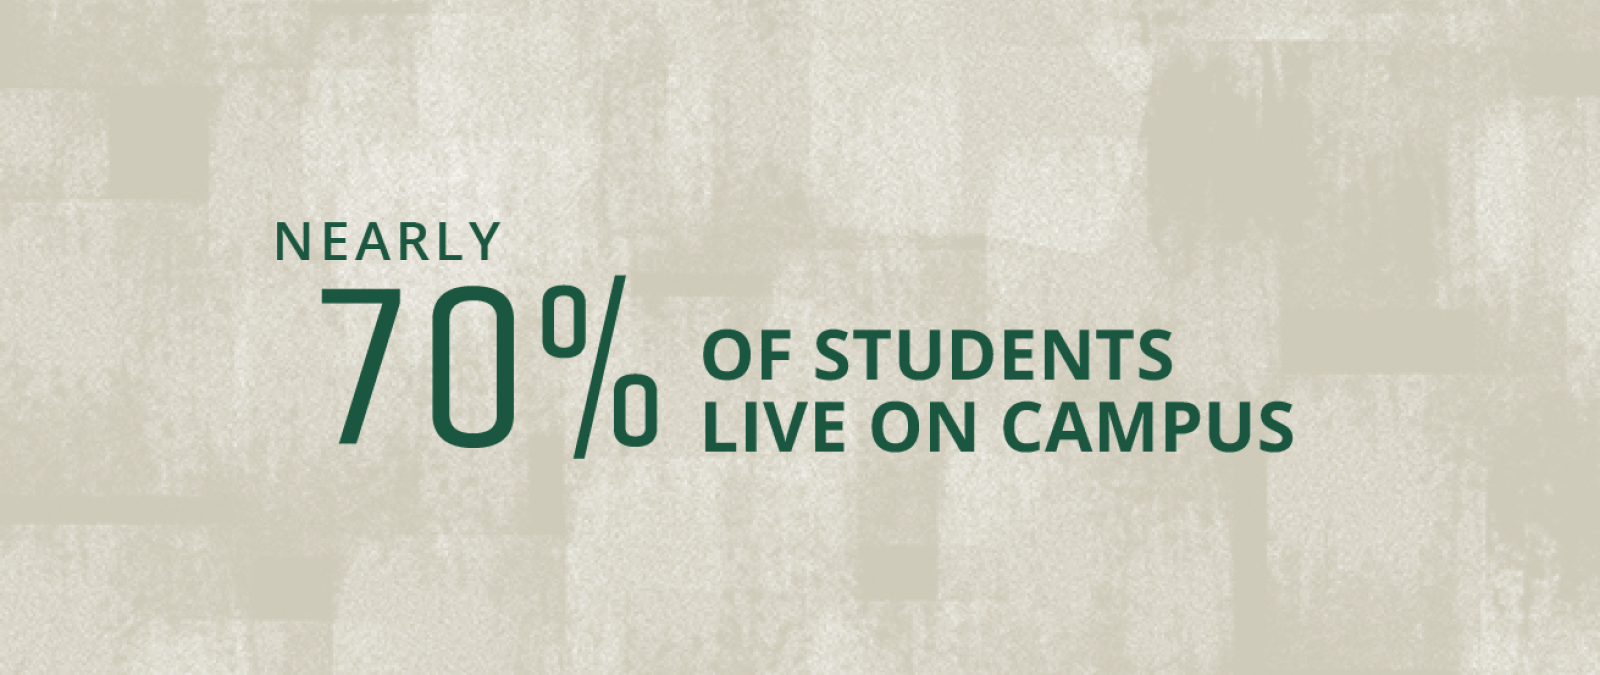 nearly 70% of students live on campus each year